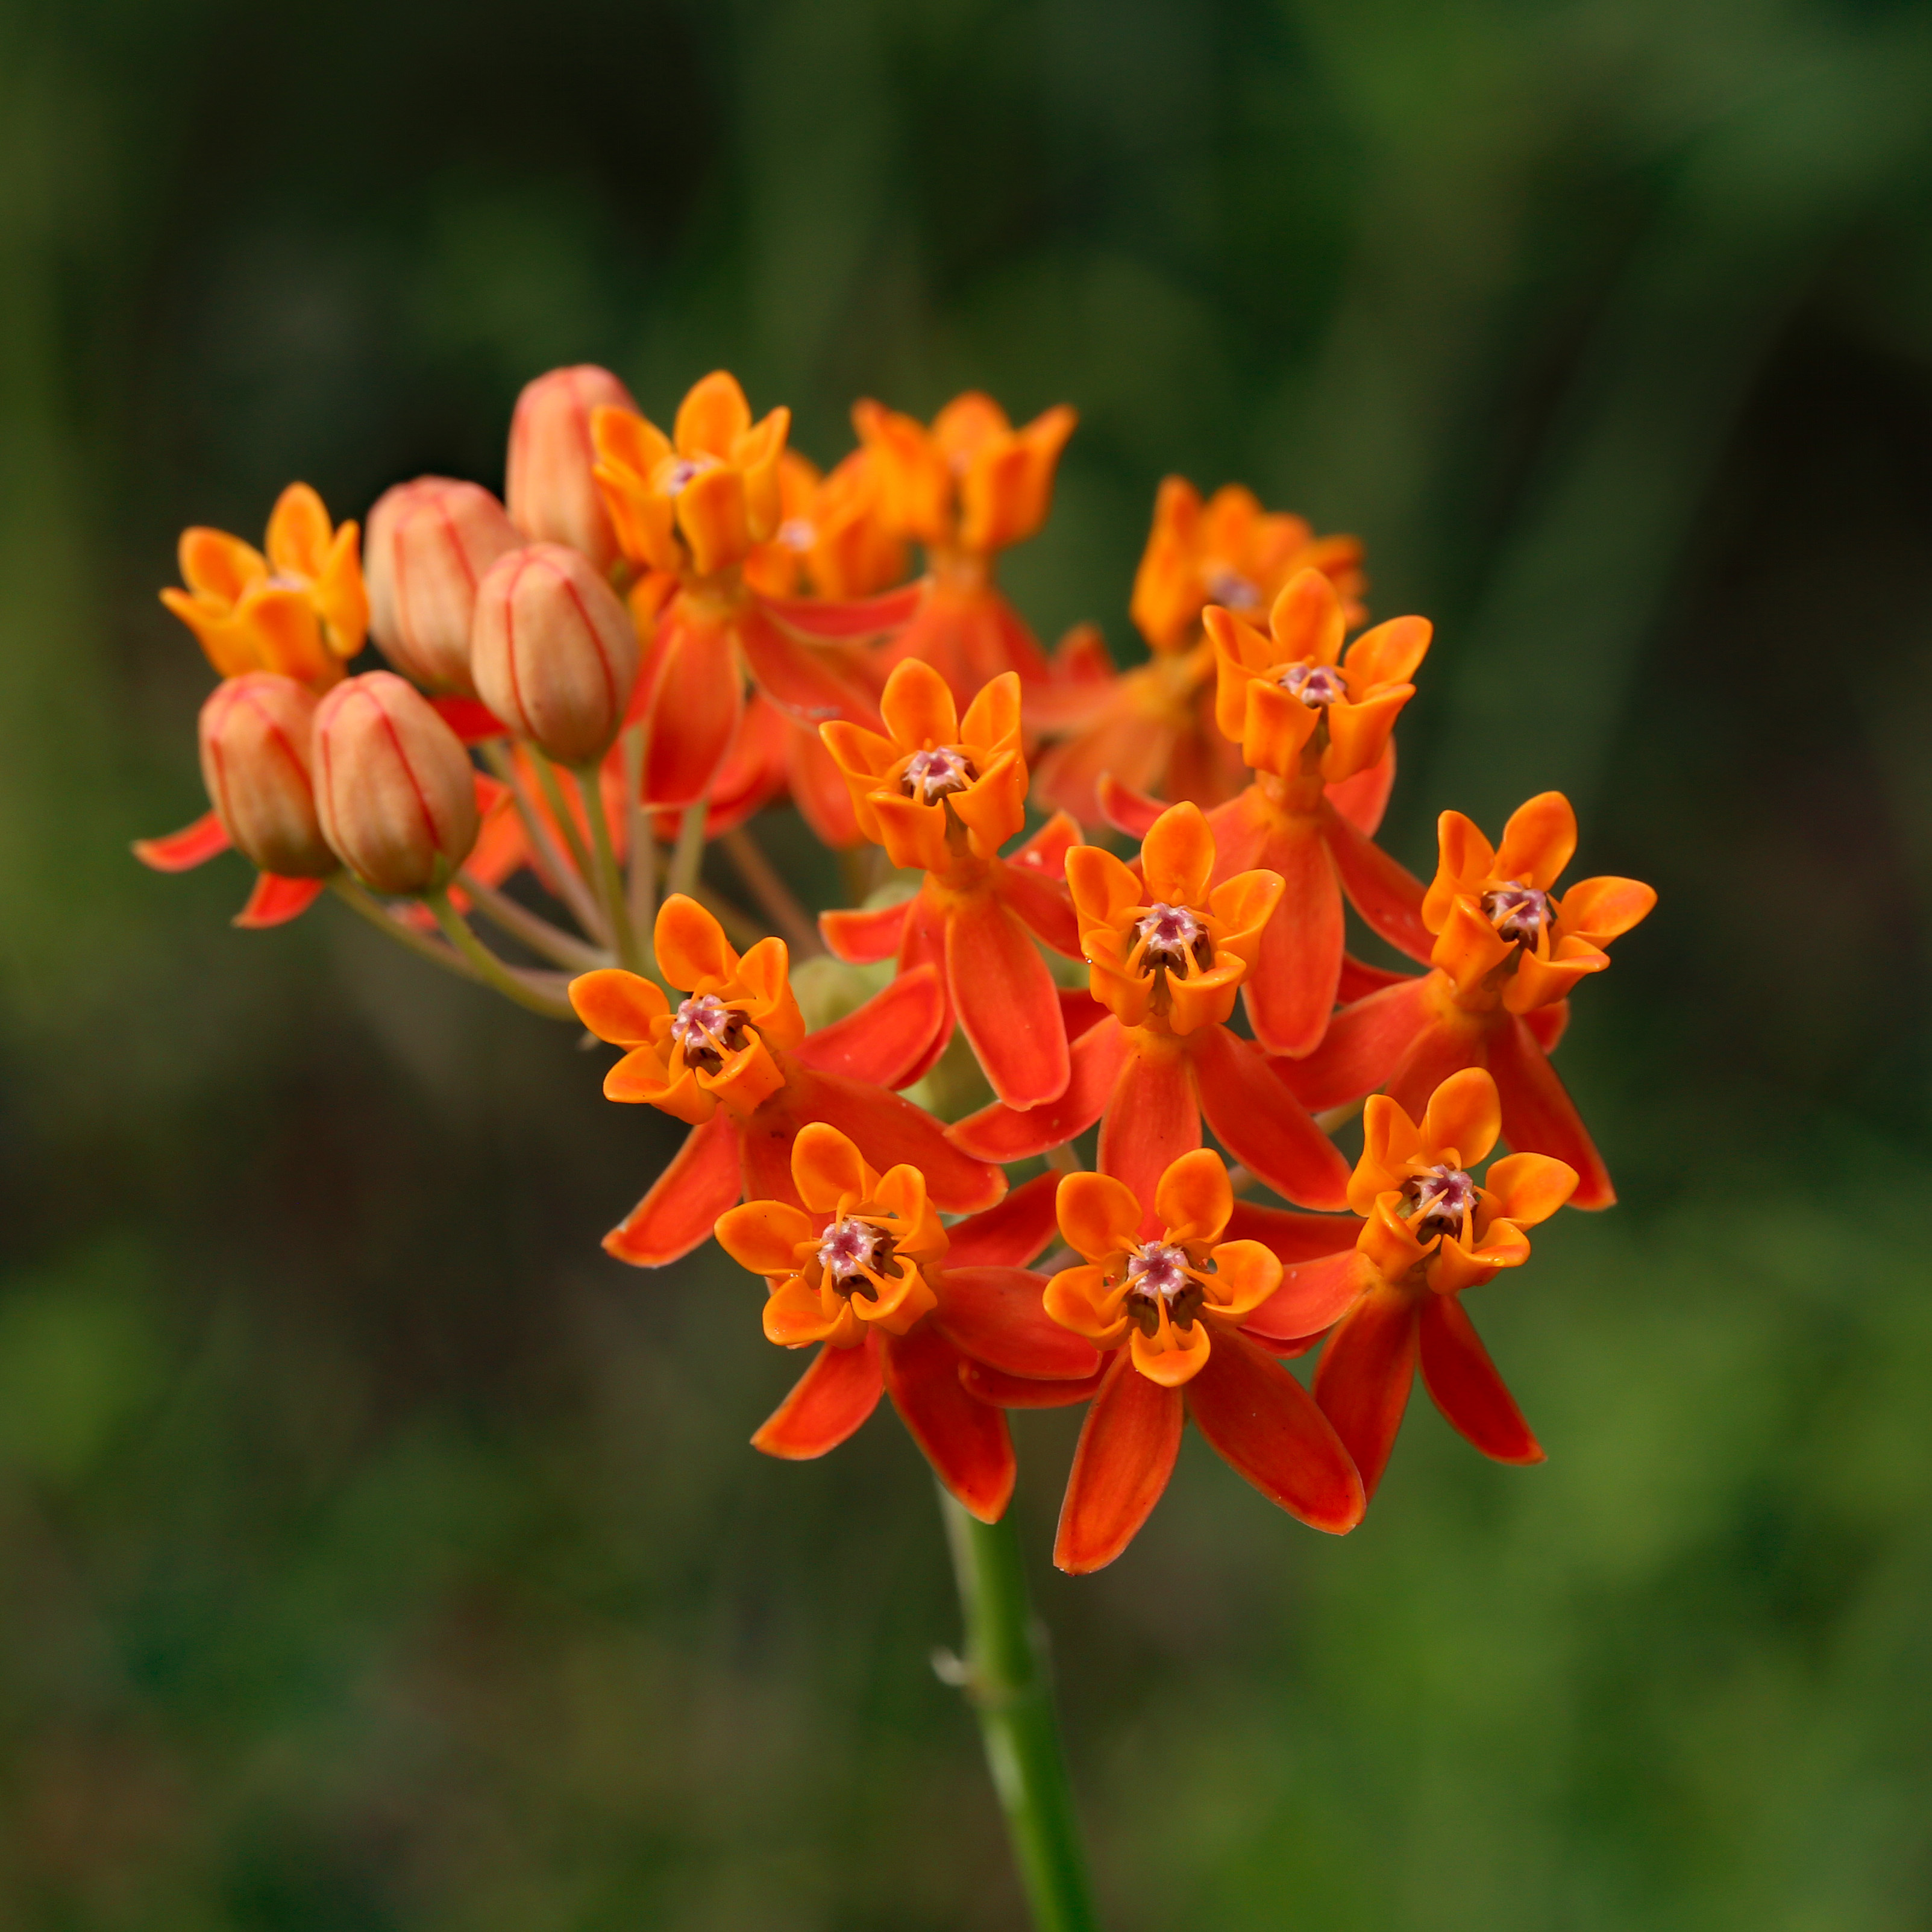 The Scientific Name is Asclepias lanceolata. You will likely hear them called Few-flower Milkweed. This picture shows the The inflorescence of Asclepias lanceolata, or Few-flowered Milkweed, typically consists of a tight cluster of bright orange flowers.  This image is from the Francis Marion area of South Carolina.  of Asclepias lanceolata